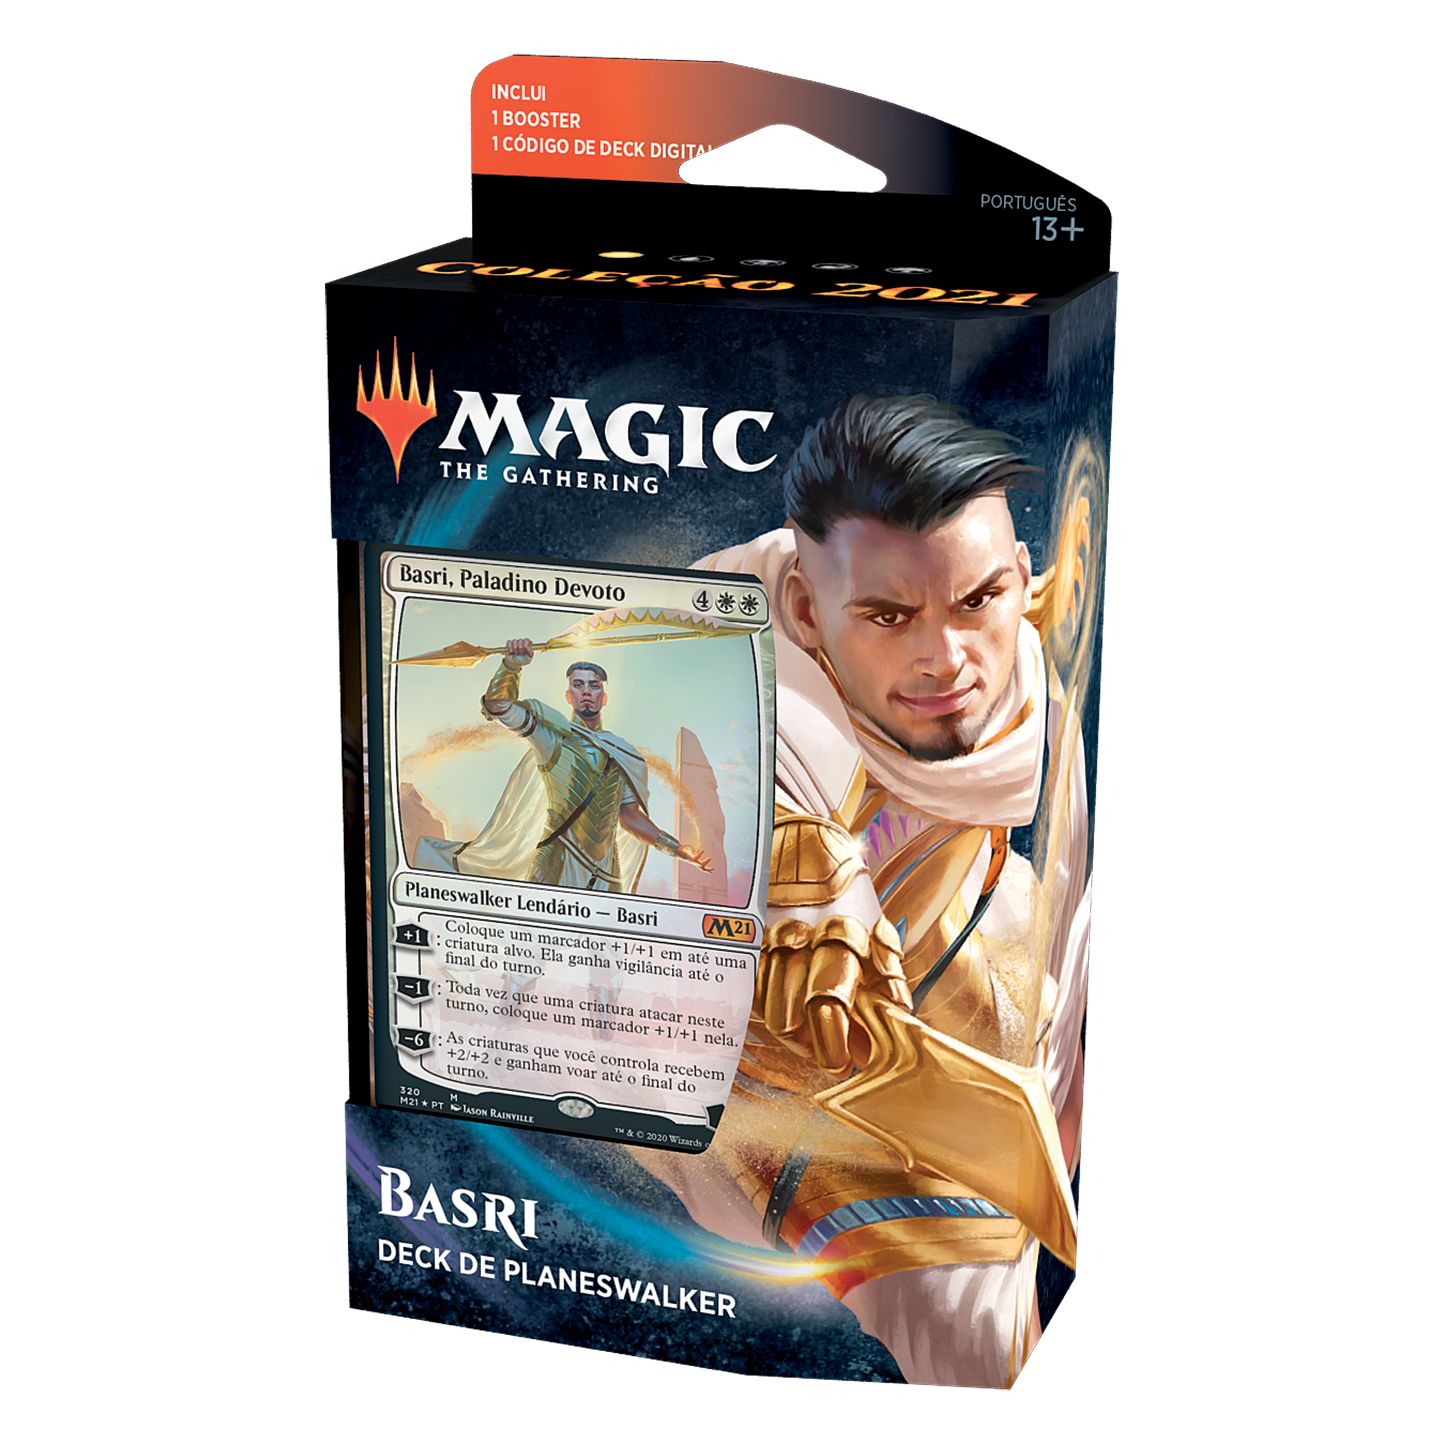 MAGIC THE GATHERING M21 DECK DE PLANESWALKER BASRI